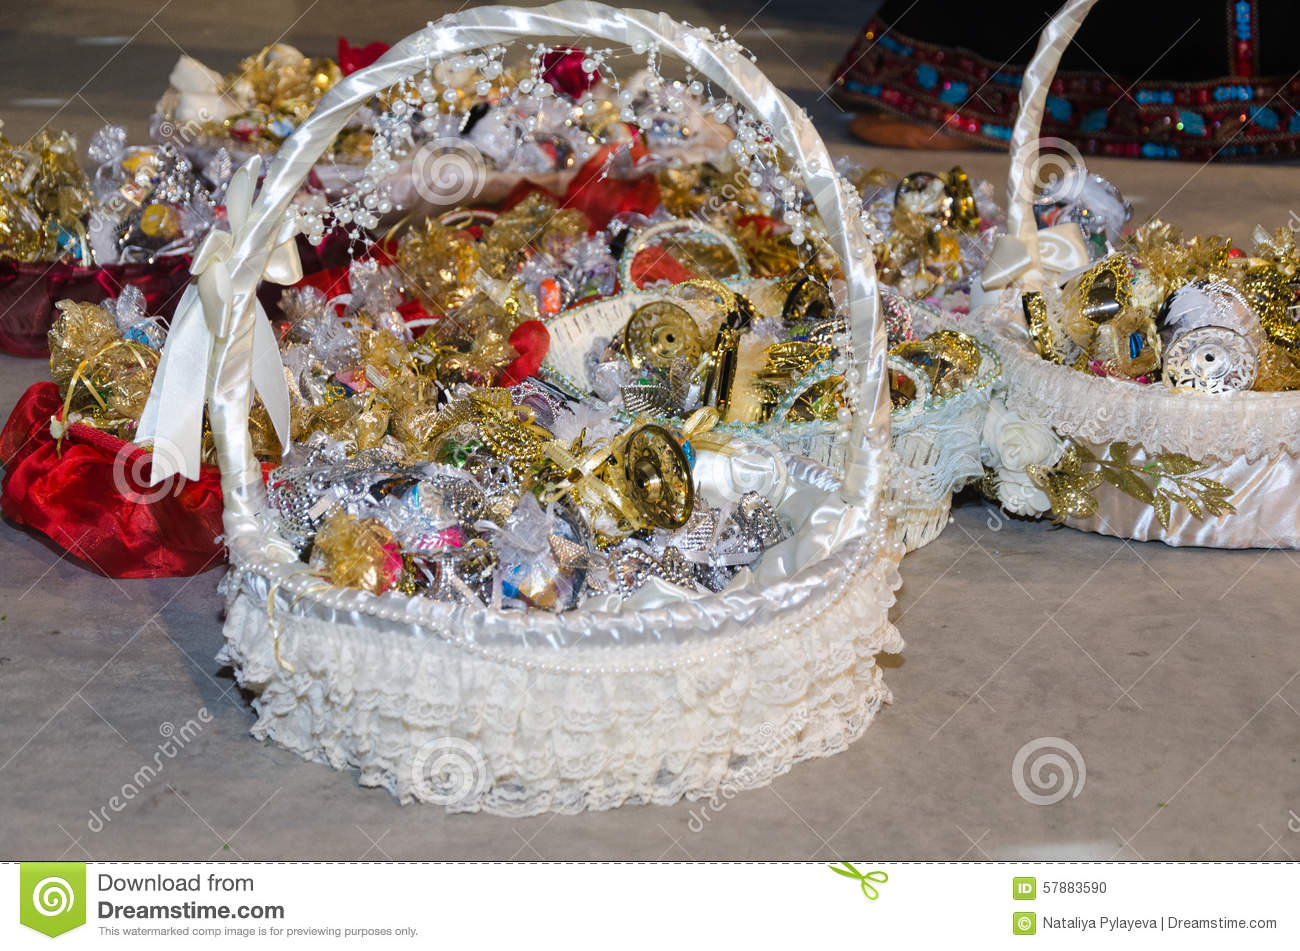 Wedding Gift For Childhood Friend : ... basket with gifts for children and friends of the bride at a wedding